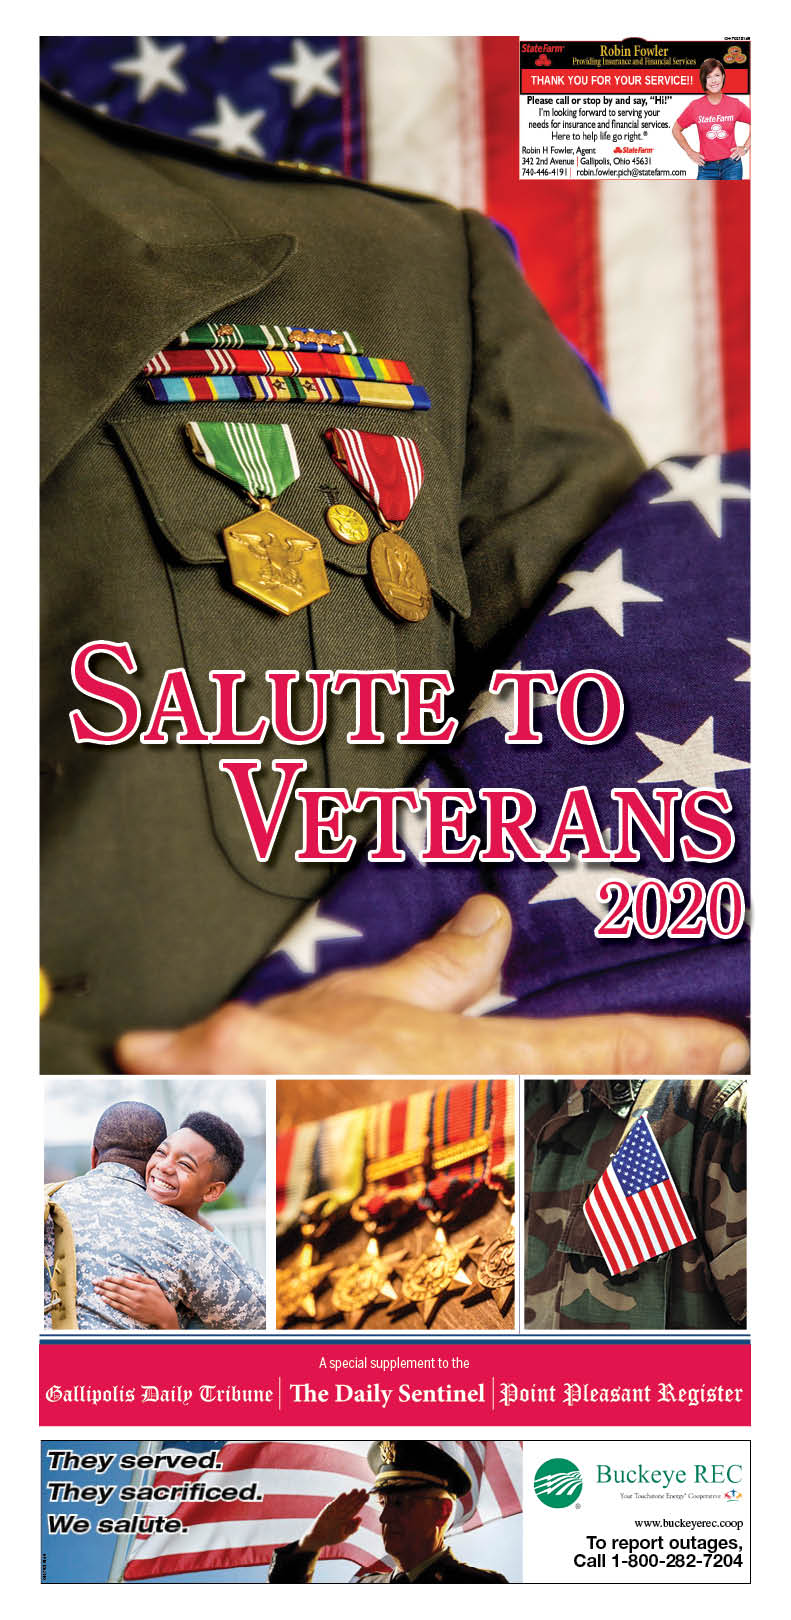 Salute to Veterans 2020